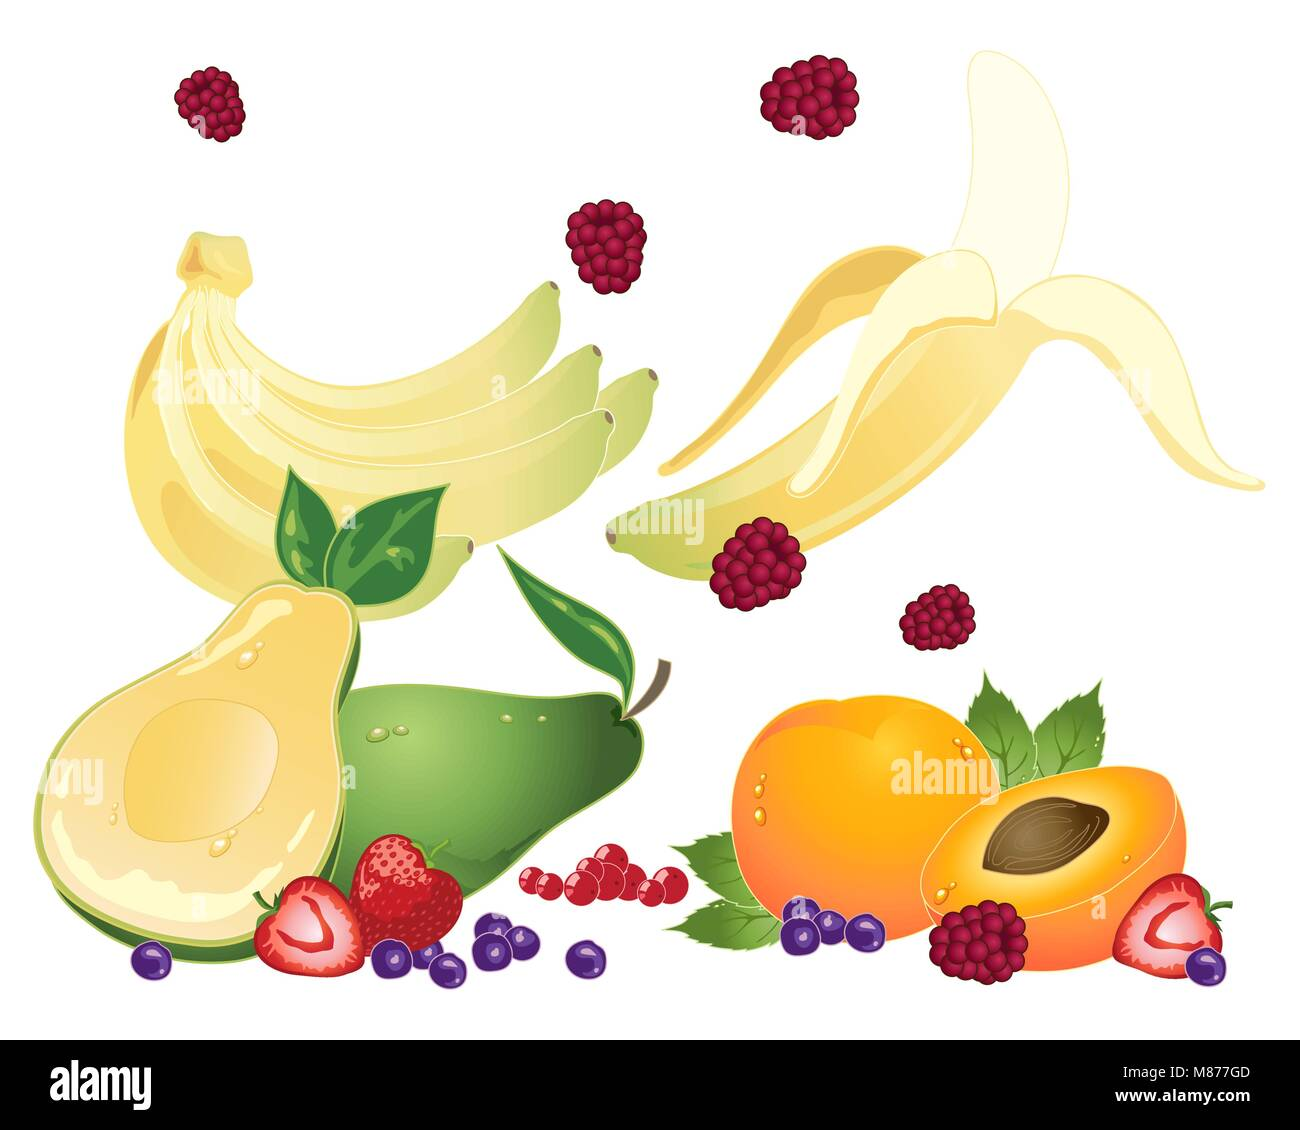 a vector illustration in eps 10 format of super fruits for healthy eating on a white background - Stock Vector